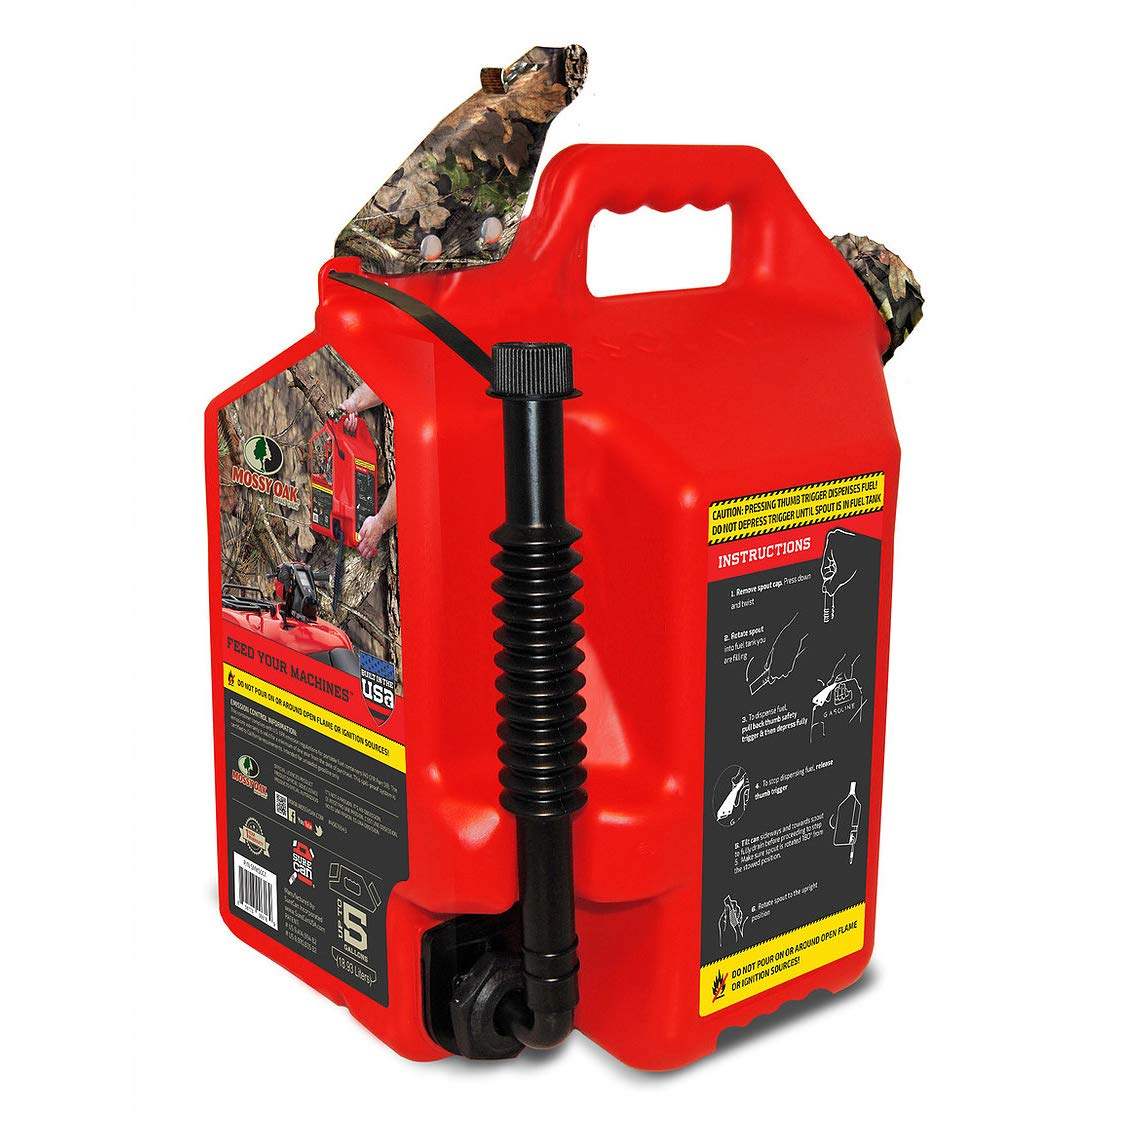 Surecan Flex 5 Gallon Total Flow Control Mossy Oak Hunting Fuel Container, Red